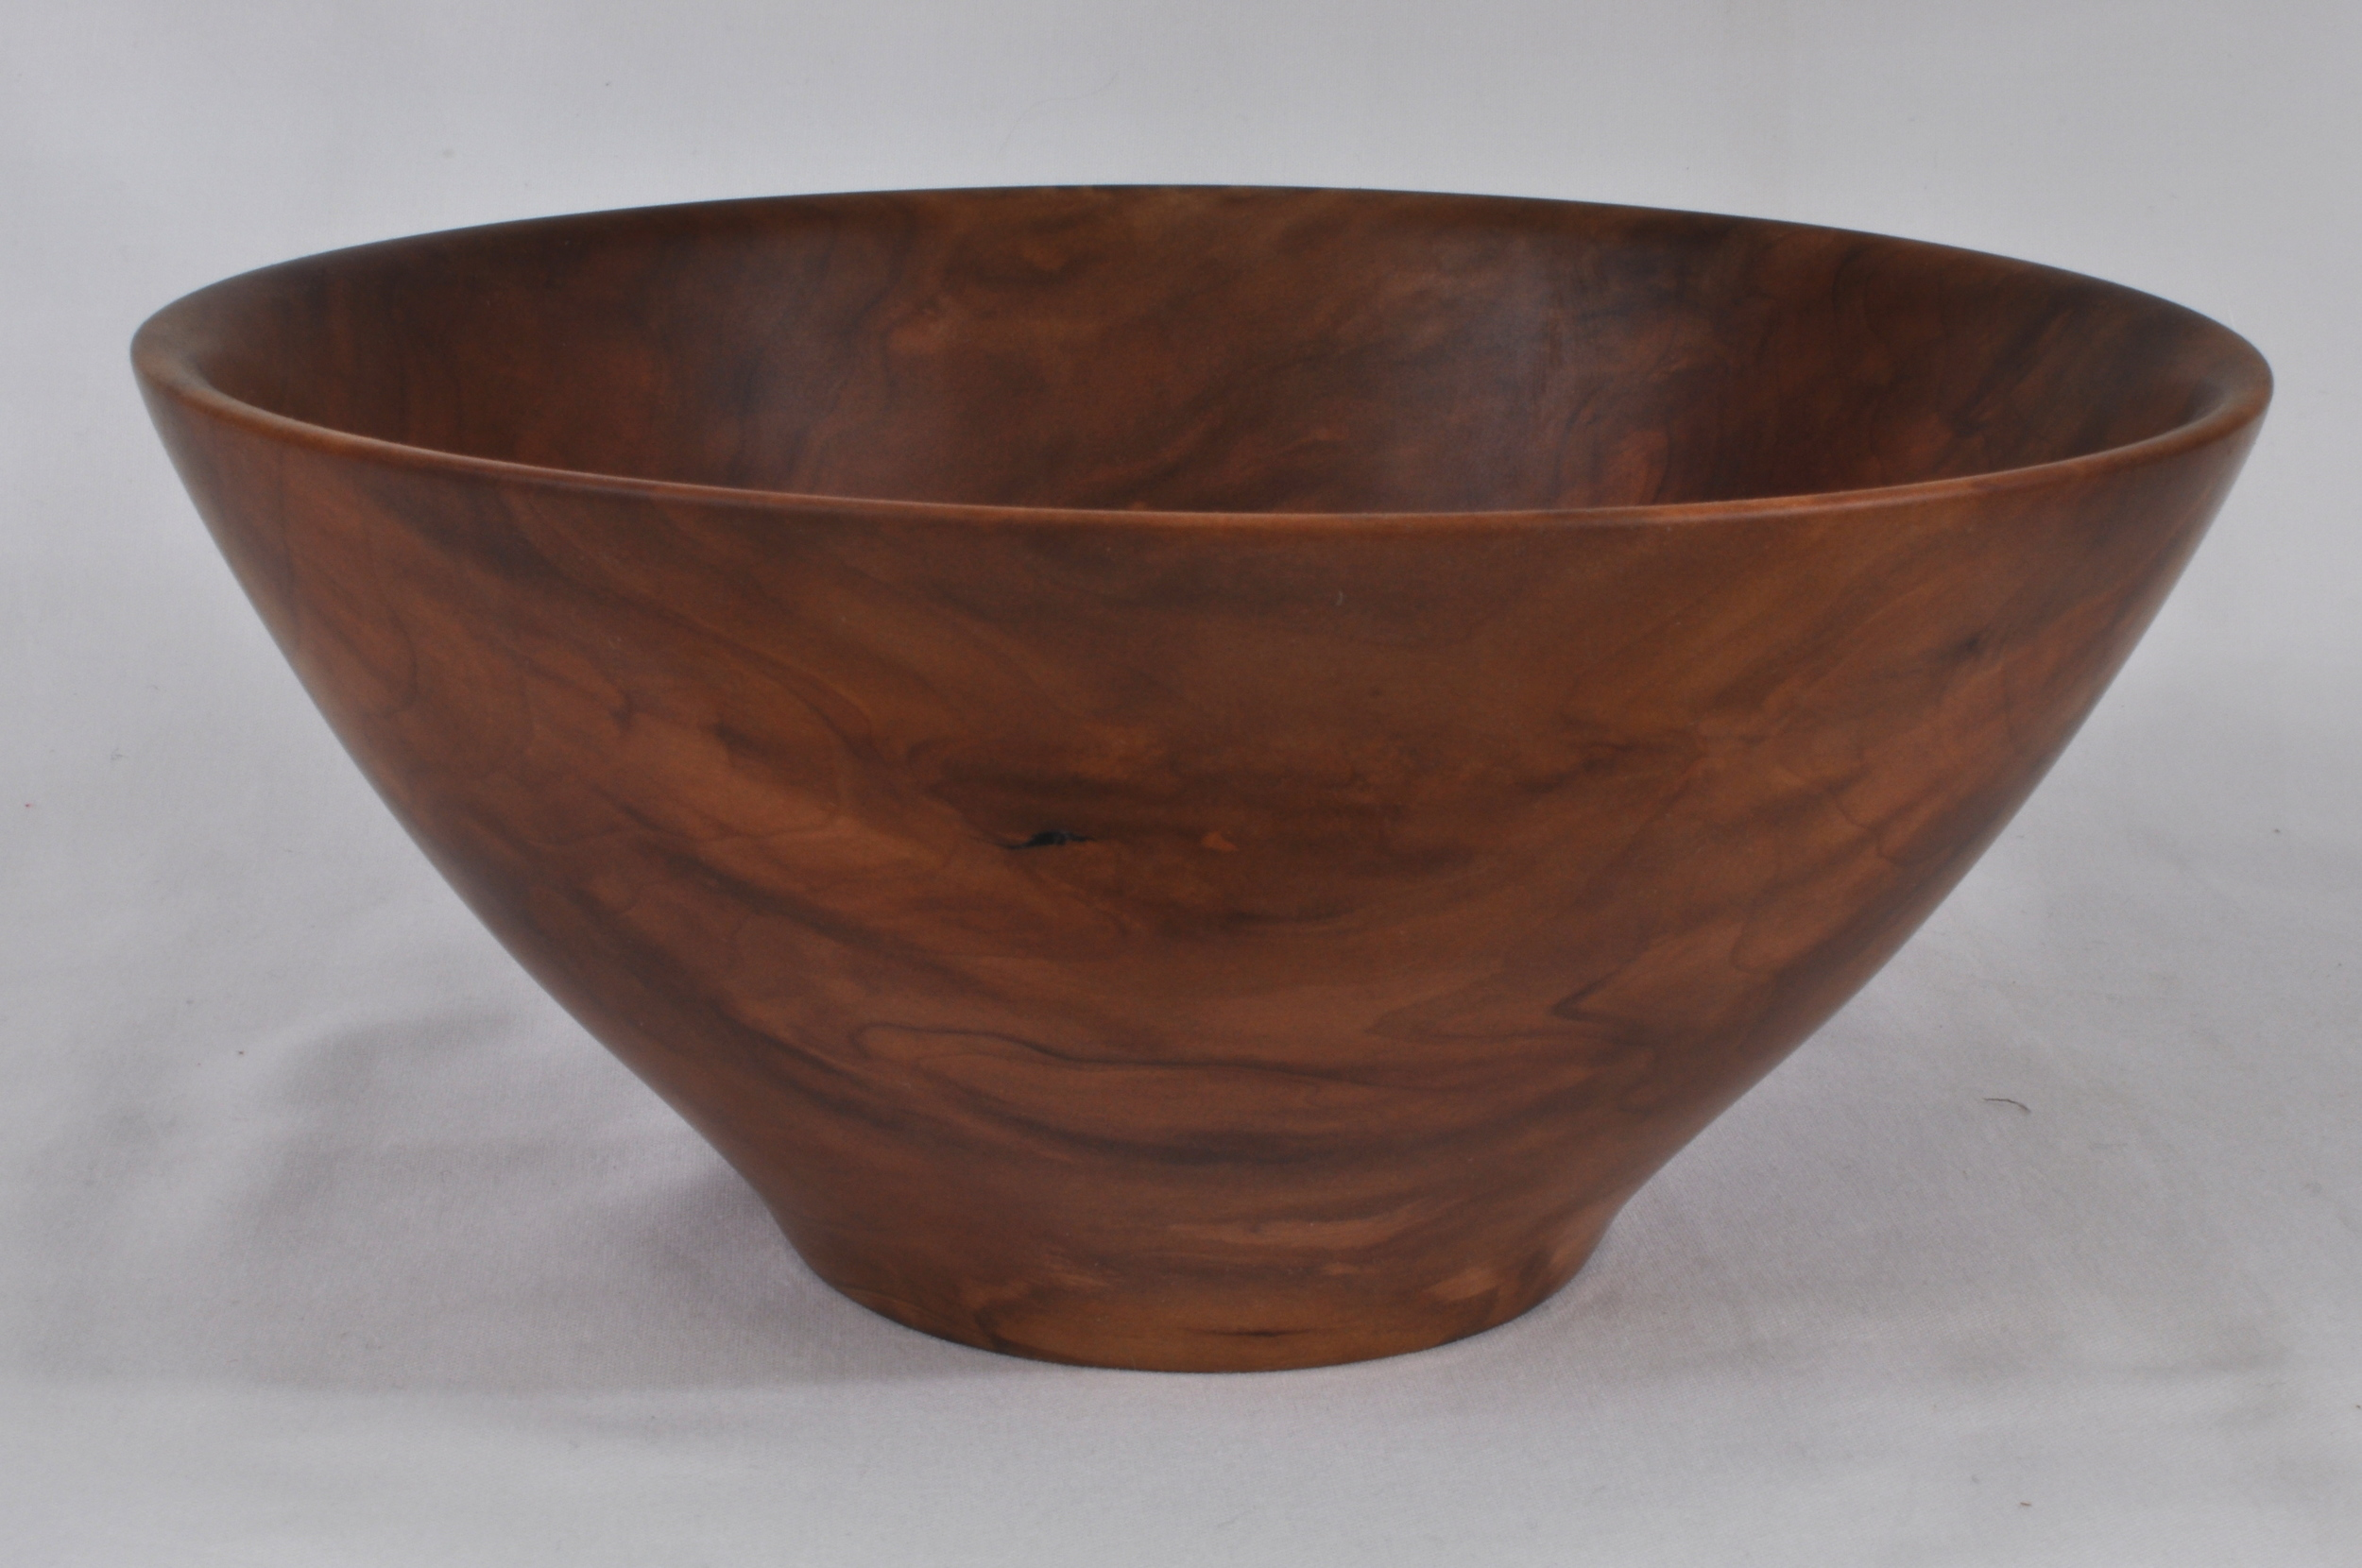 Figured Callery Pear bowl